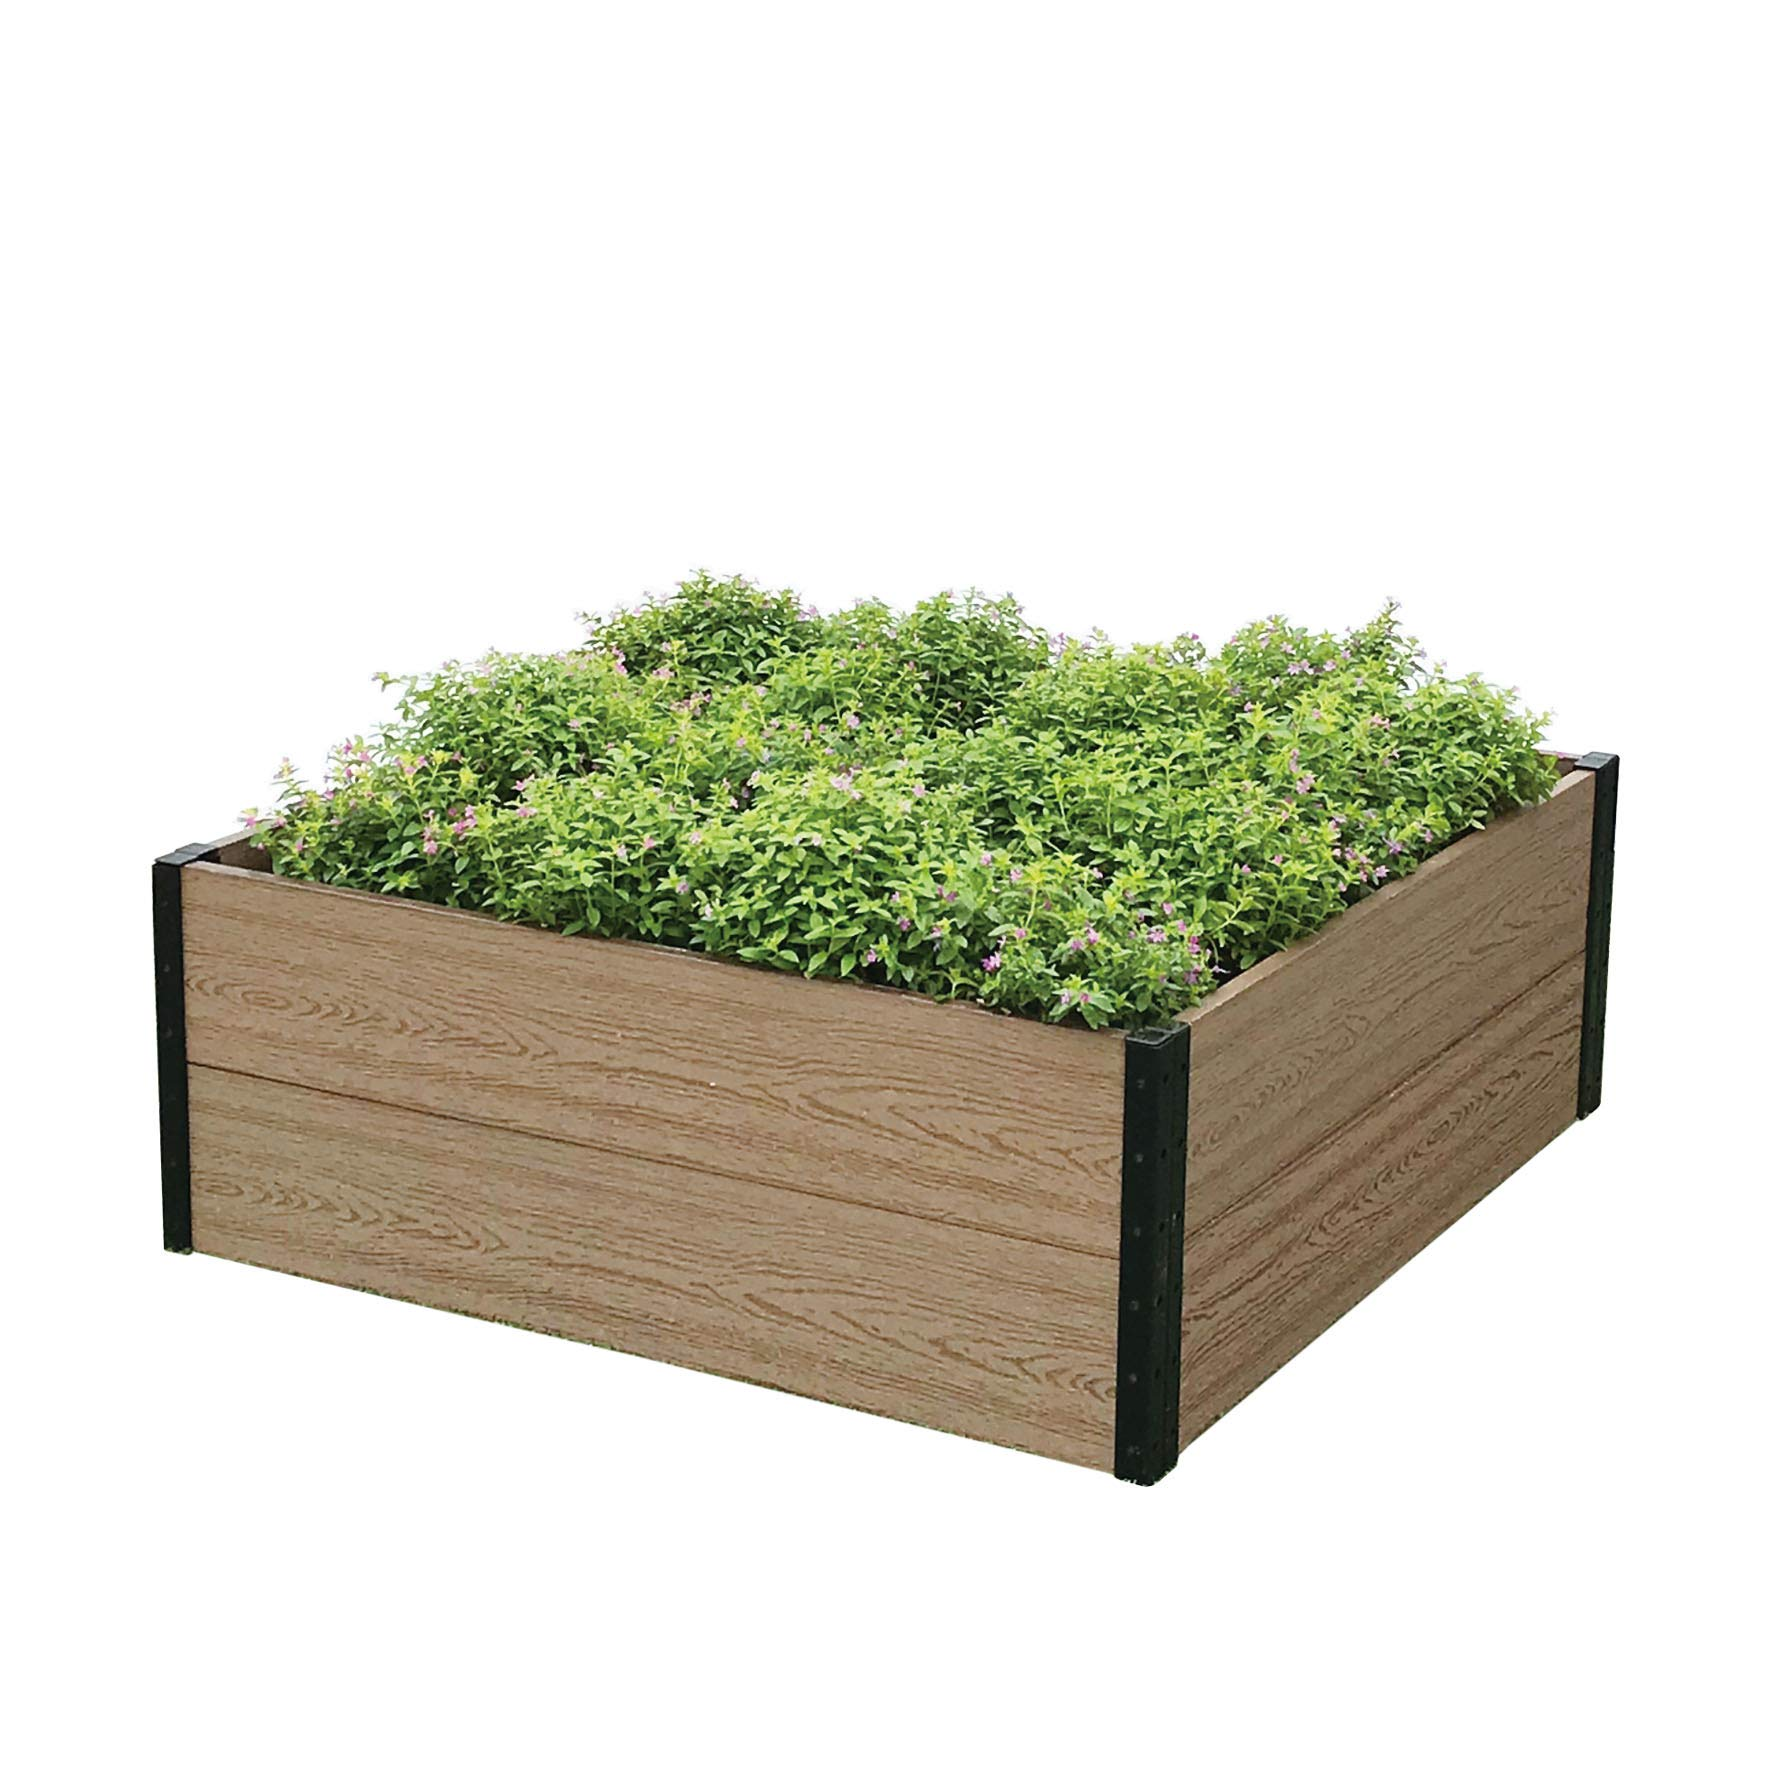 Everbloom Deep Root Raised Garden Bed 38'' L x 40'' W''x 14'' H for Growing Herbs, Vegetables, Flowers